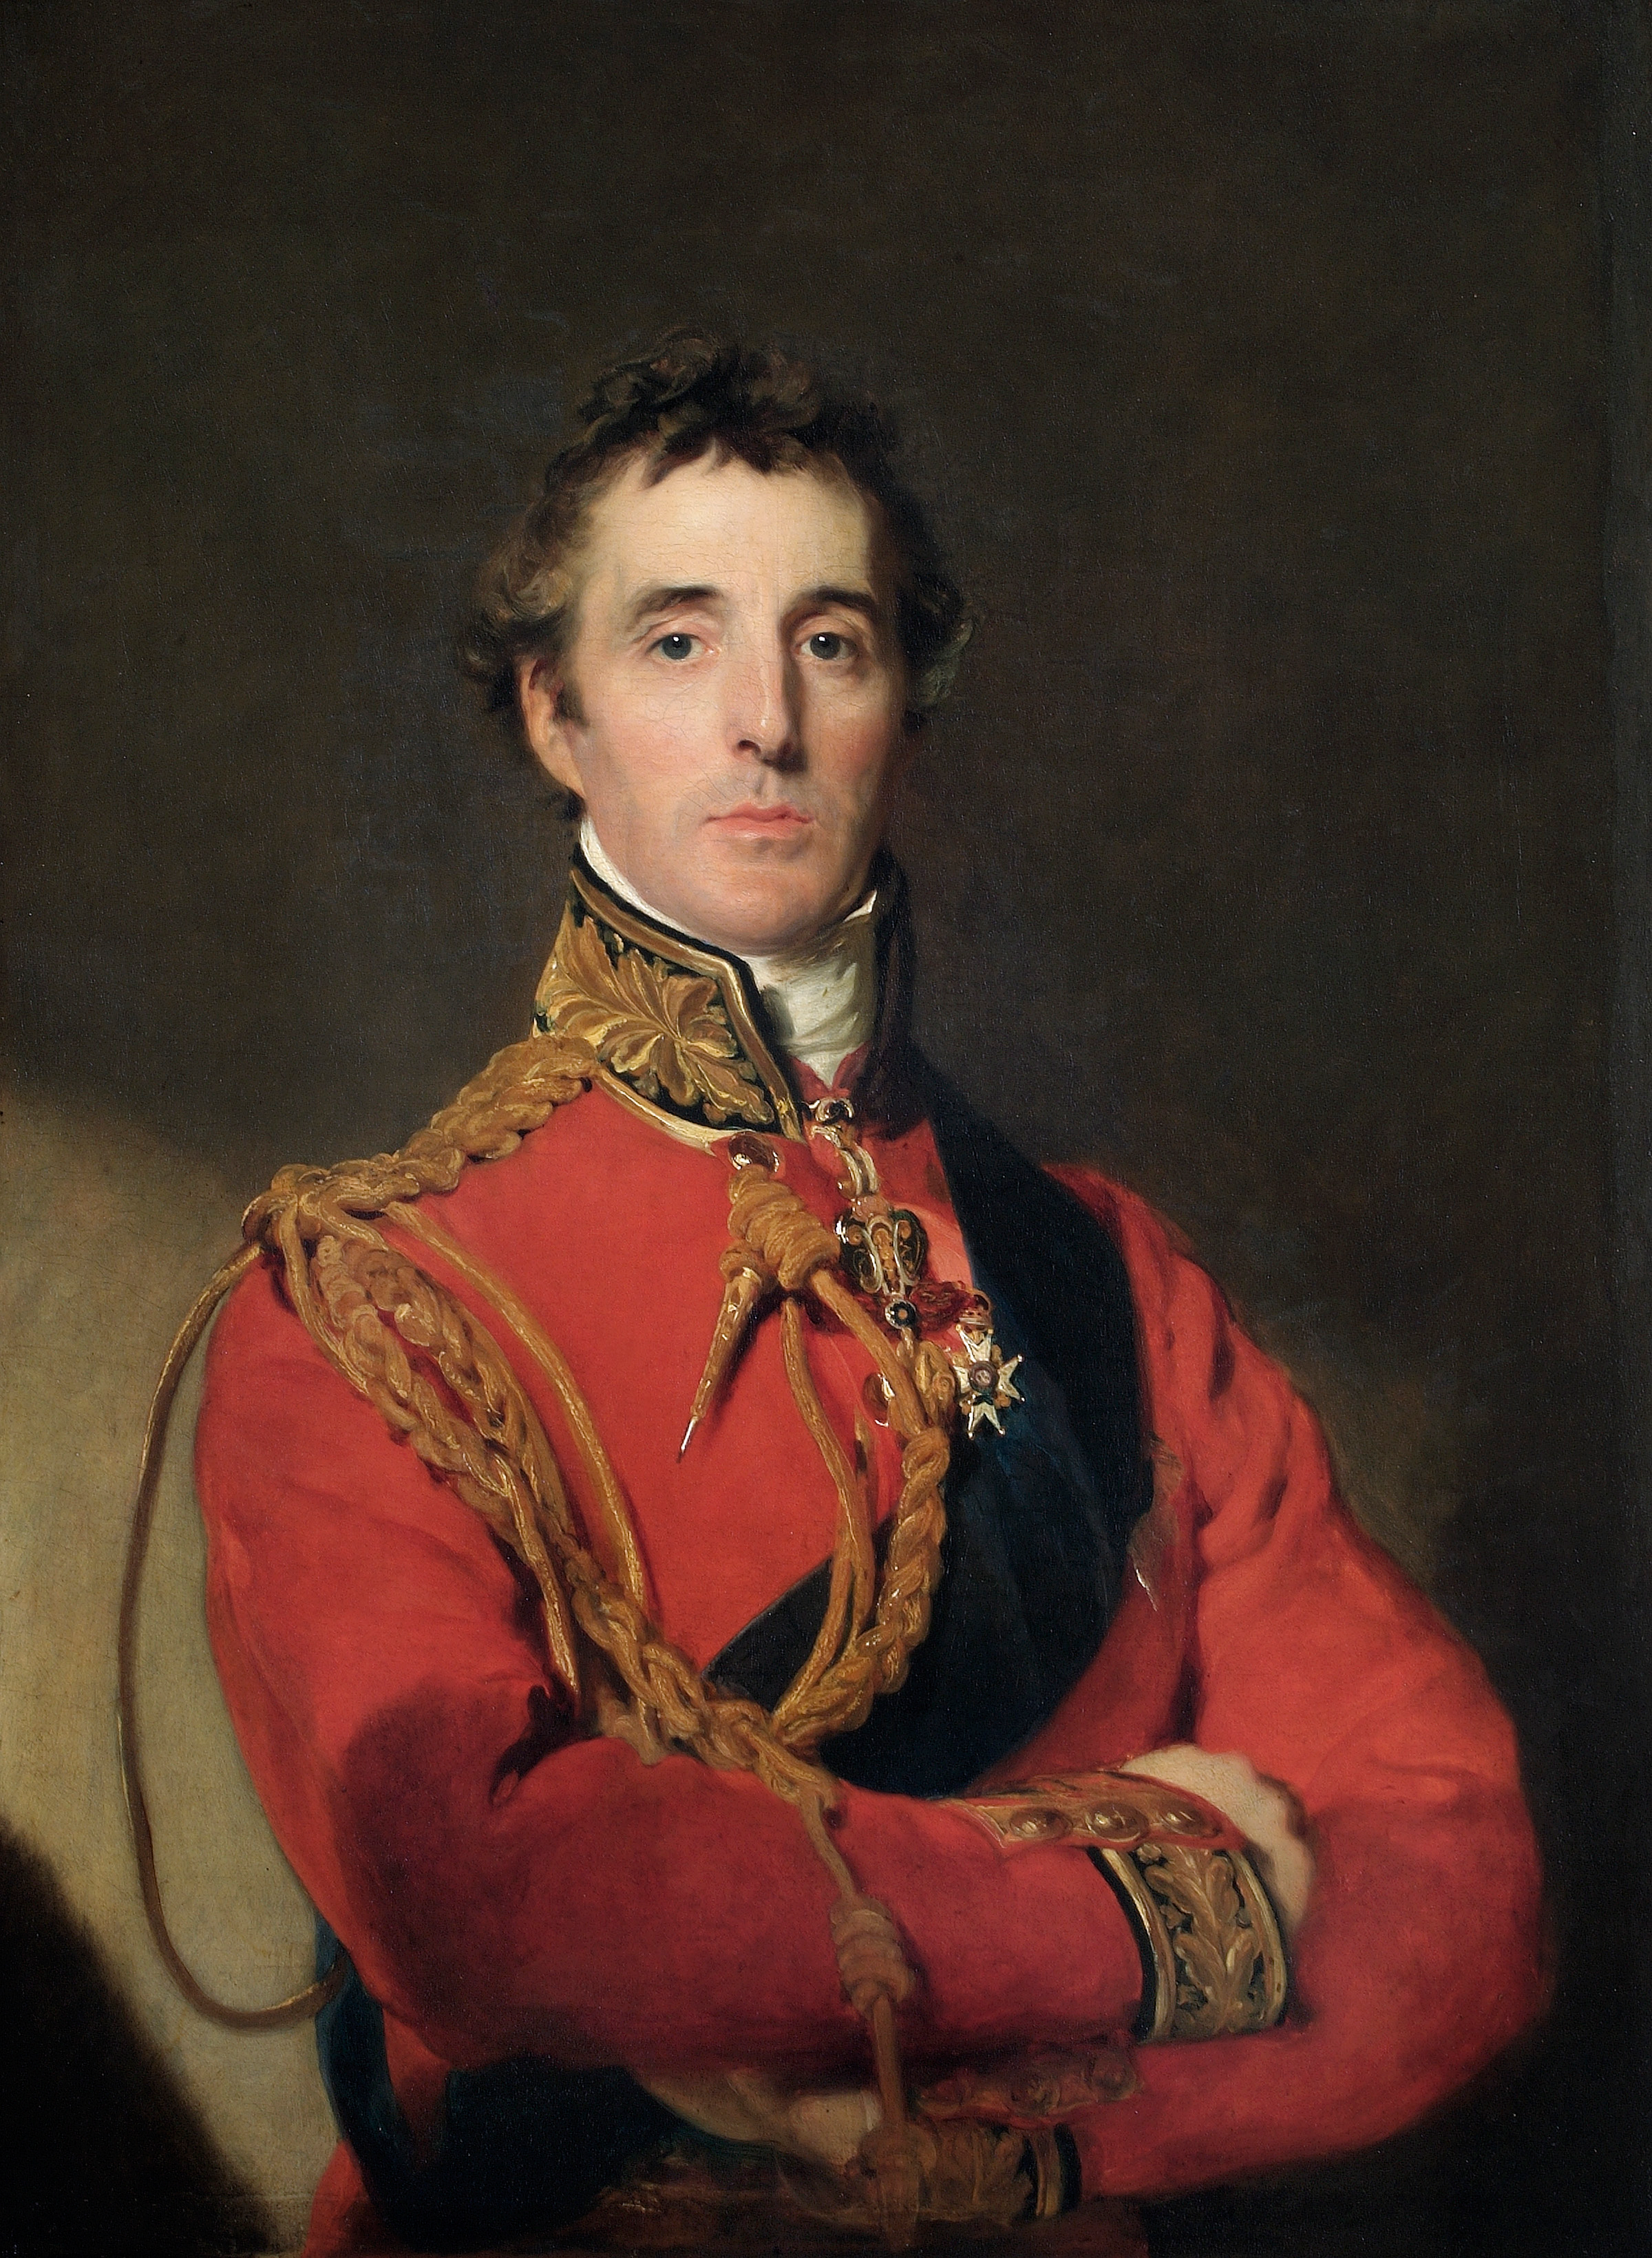 http://upload.wikimedia.org/wikipedia/commons/8/83/Sir_Arthur_Wellesley%2C_1st_Duke_of_Wellington.png